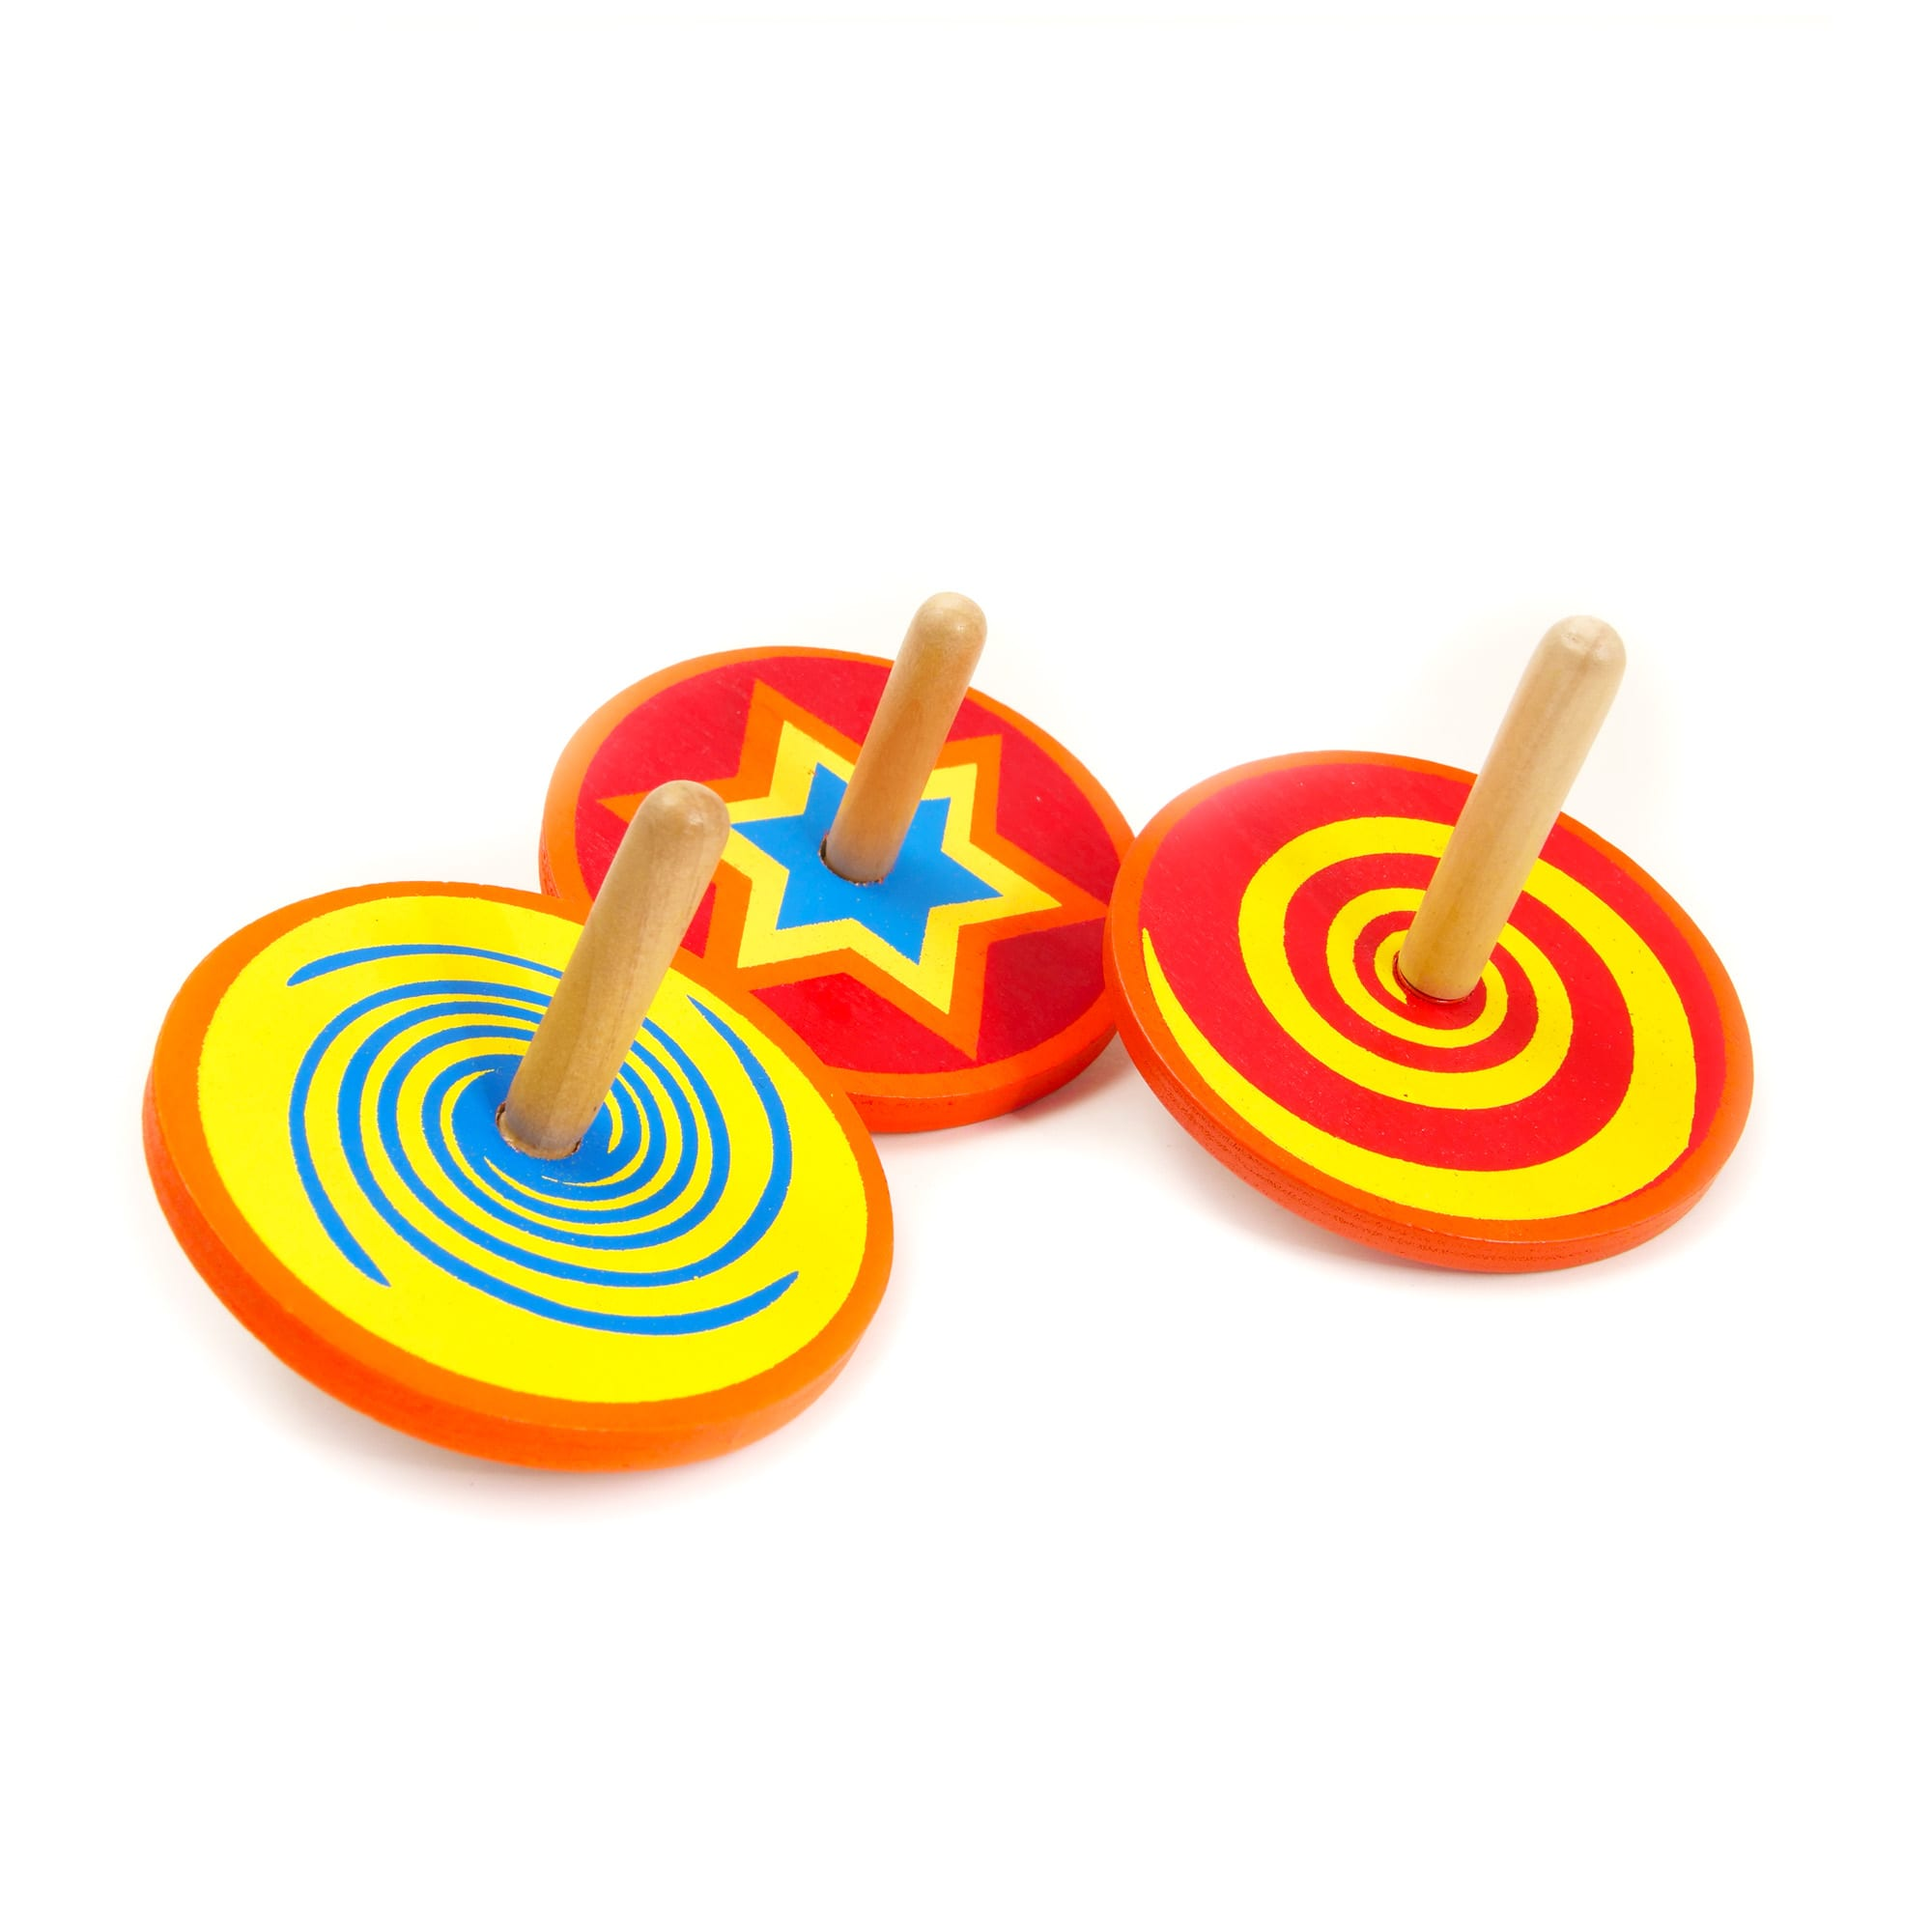 Image result for house of marbles spinning top